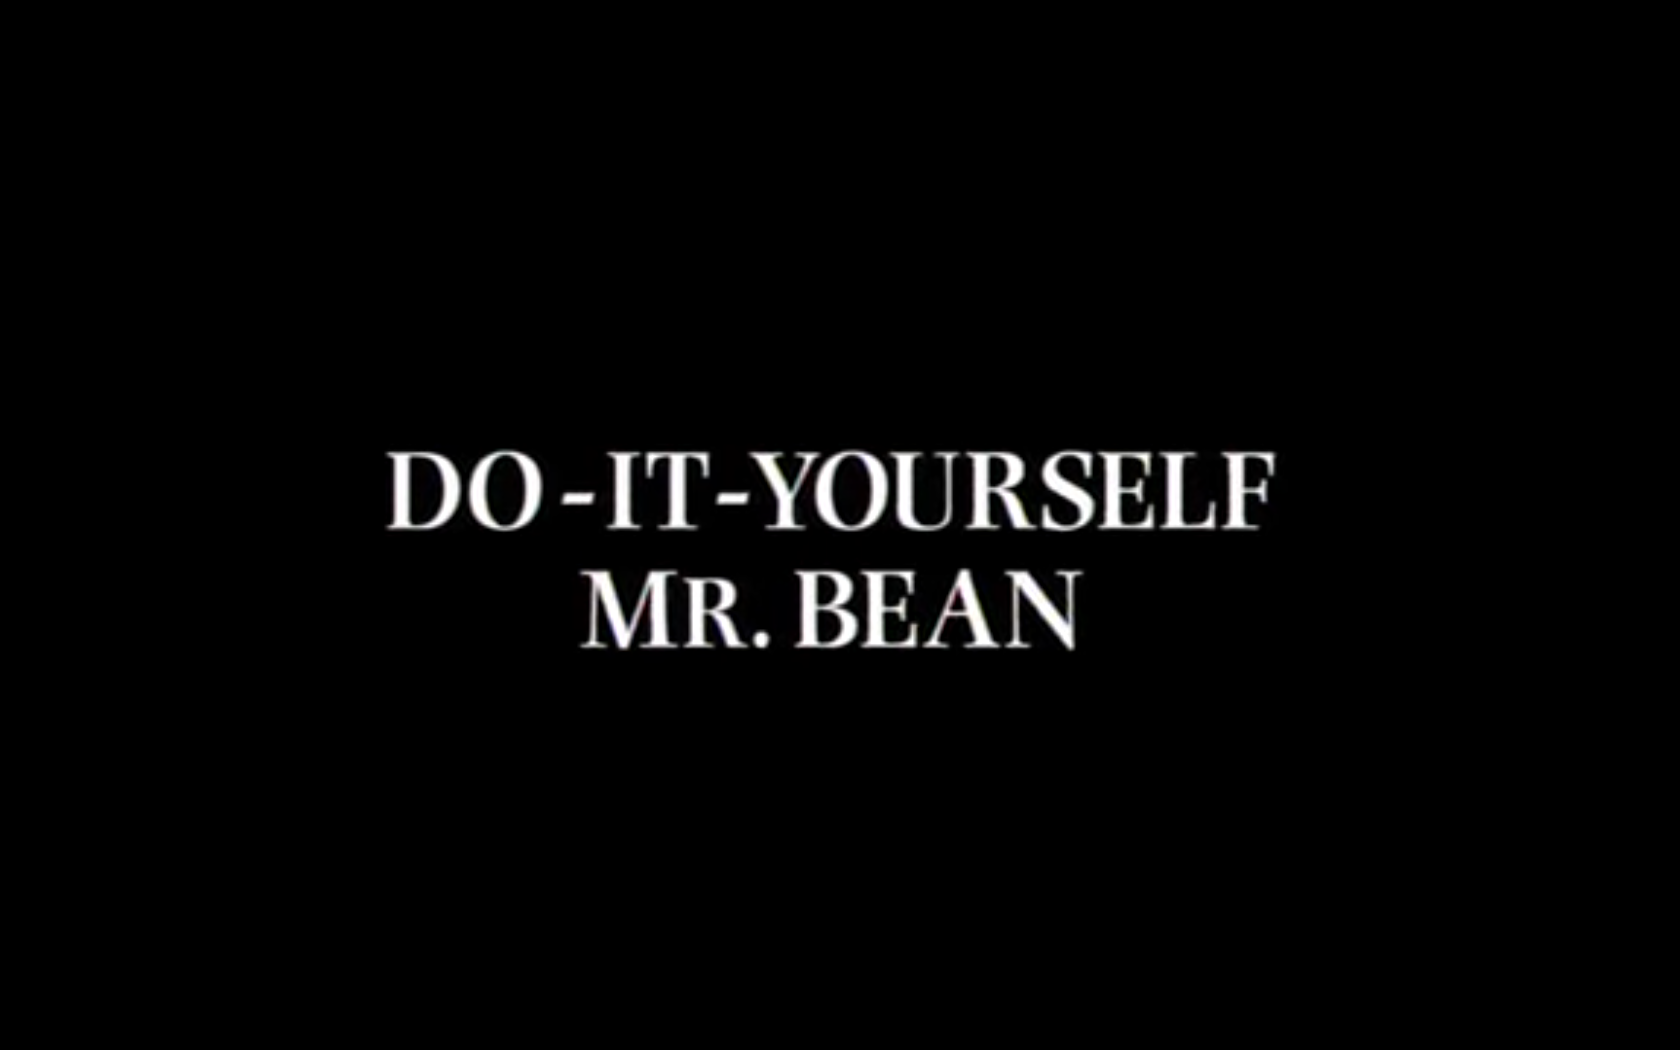 Do it yourself mr bean mr bean wiki fandom powered by wikia do it yourself mr bean solutioingenieria Choice Image